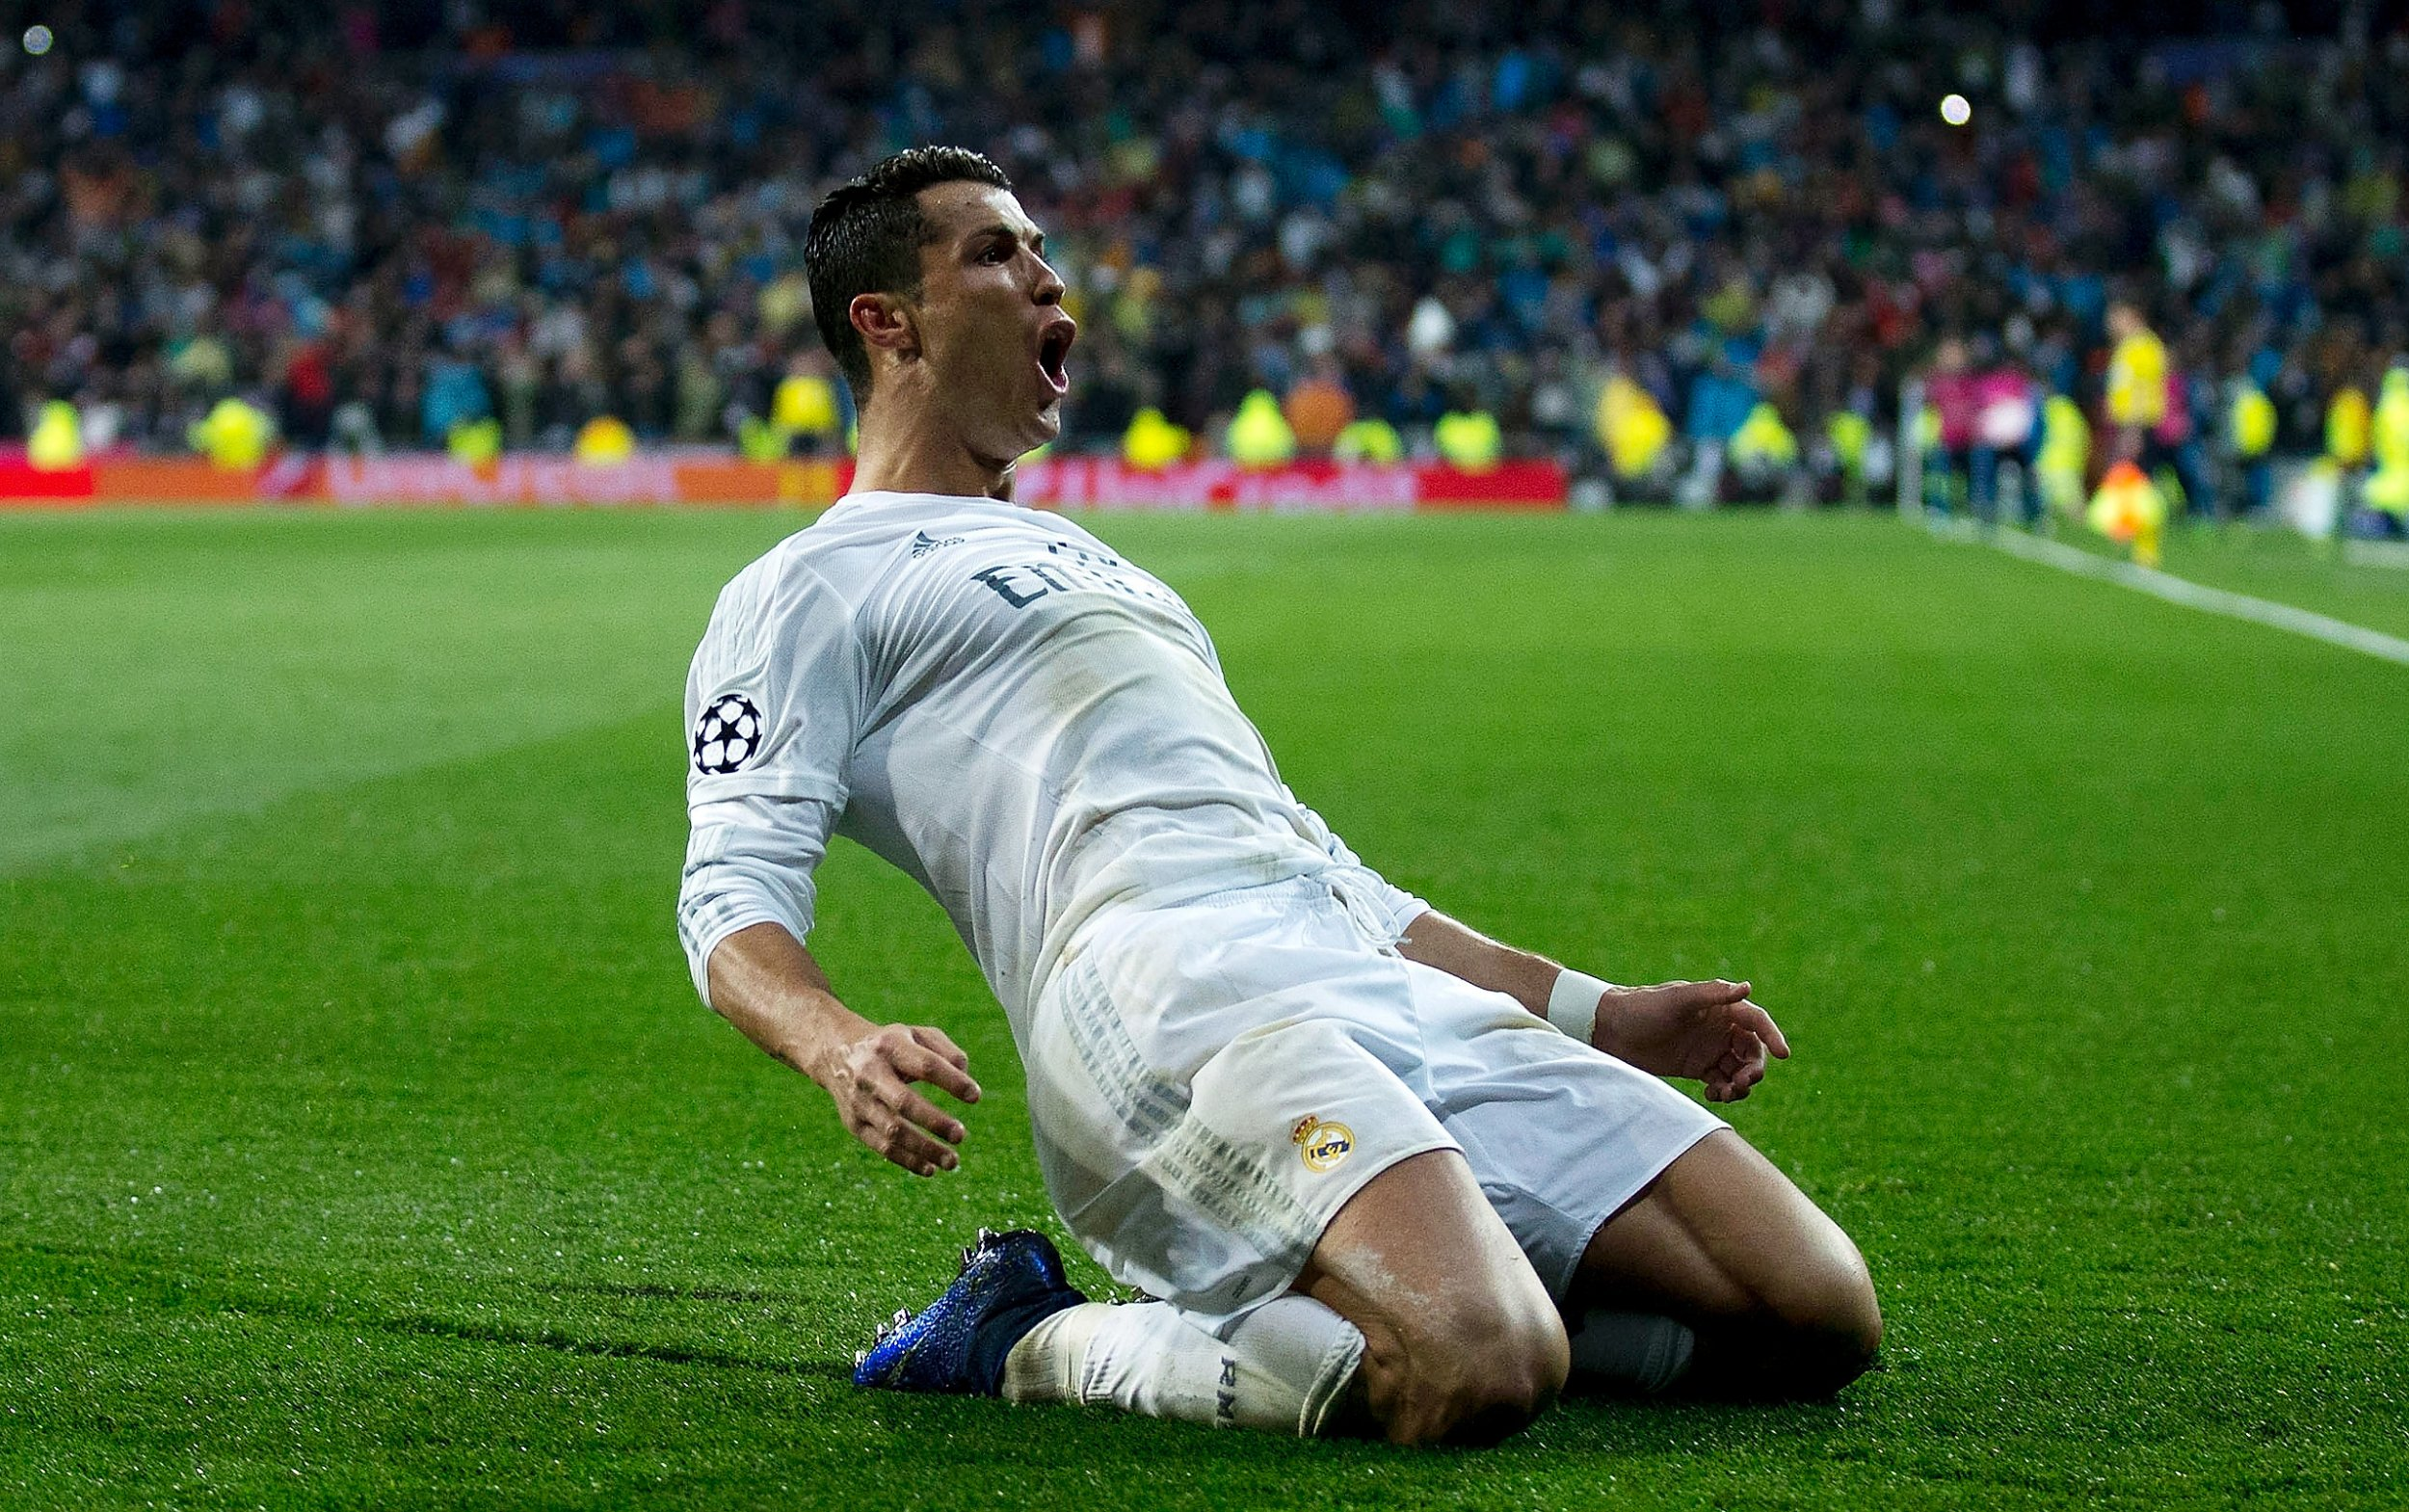 Cristiano Ronaldo scored a hat-trick on Tuesday to knock Wolfsburg out of the Champions League.